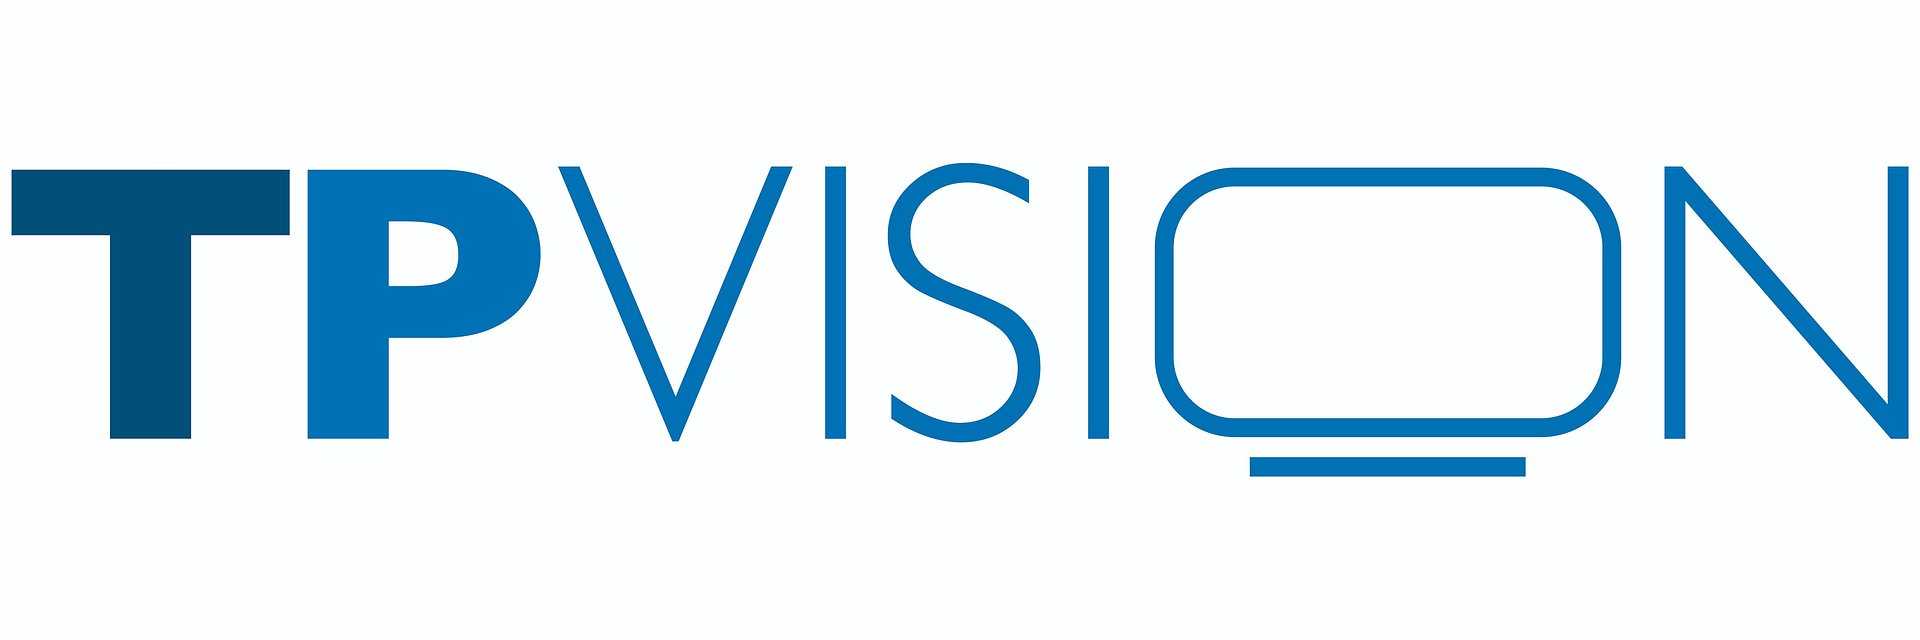 TP Vision - Philips TV & Sound- enjoys record business performance